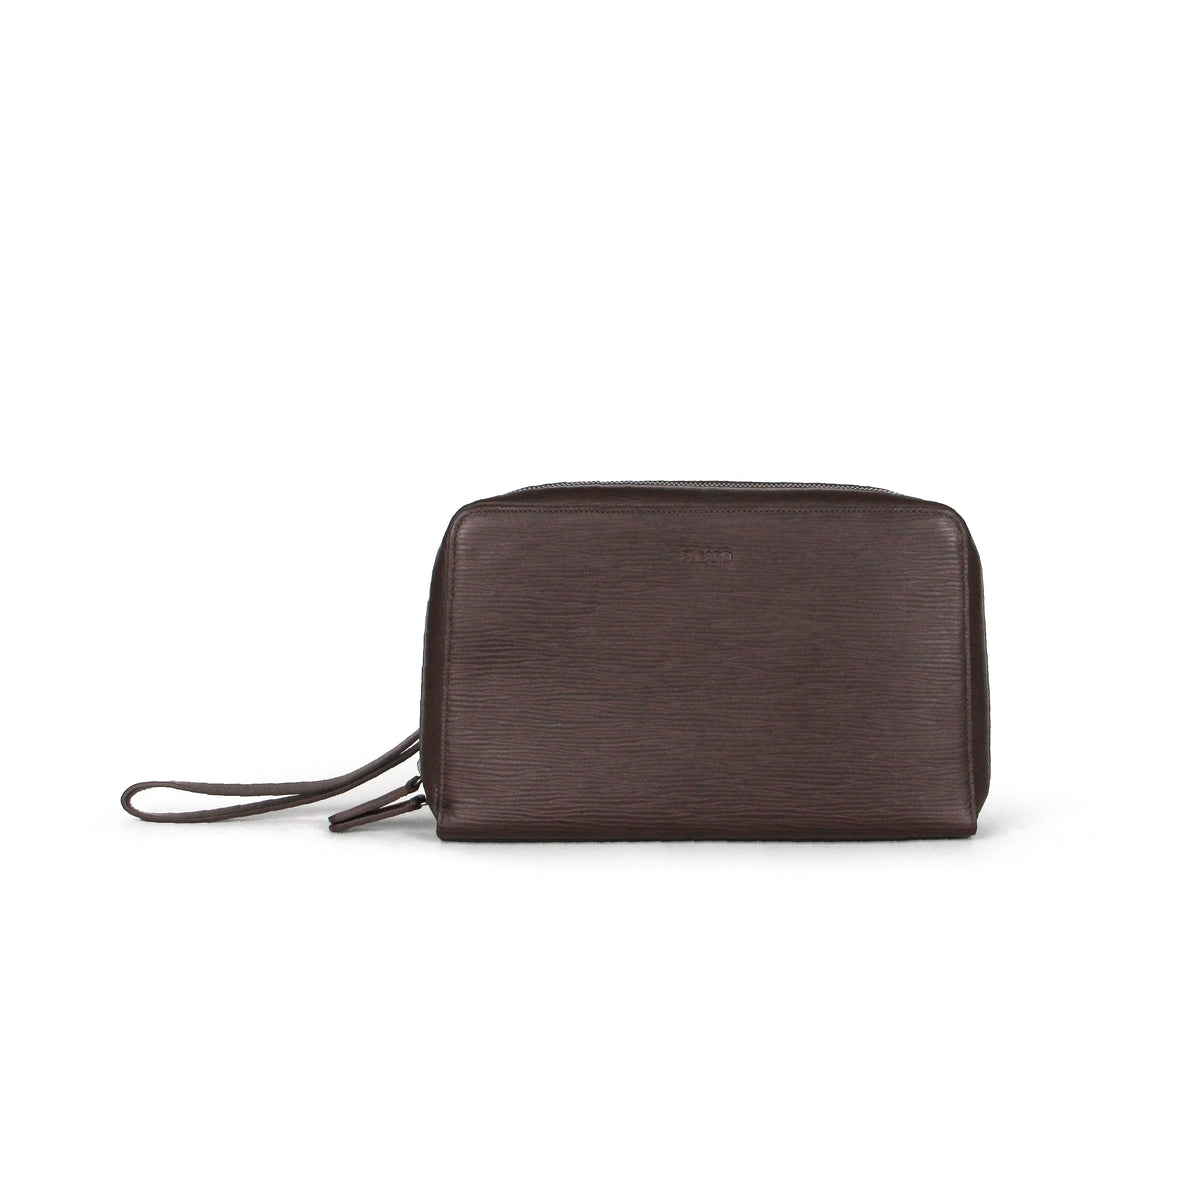 PICARD-PORJUS-CLUTCH BAG